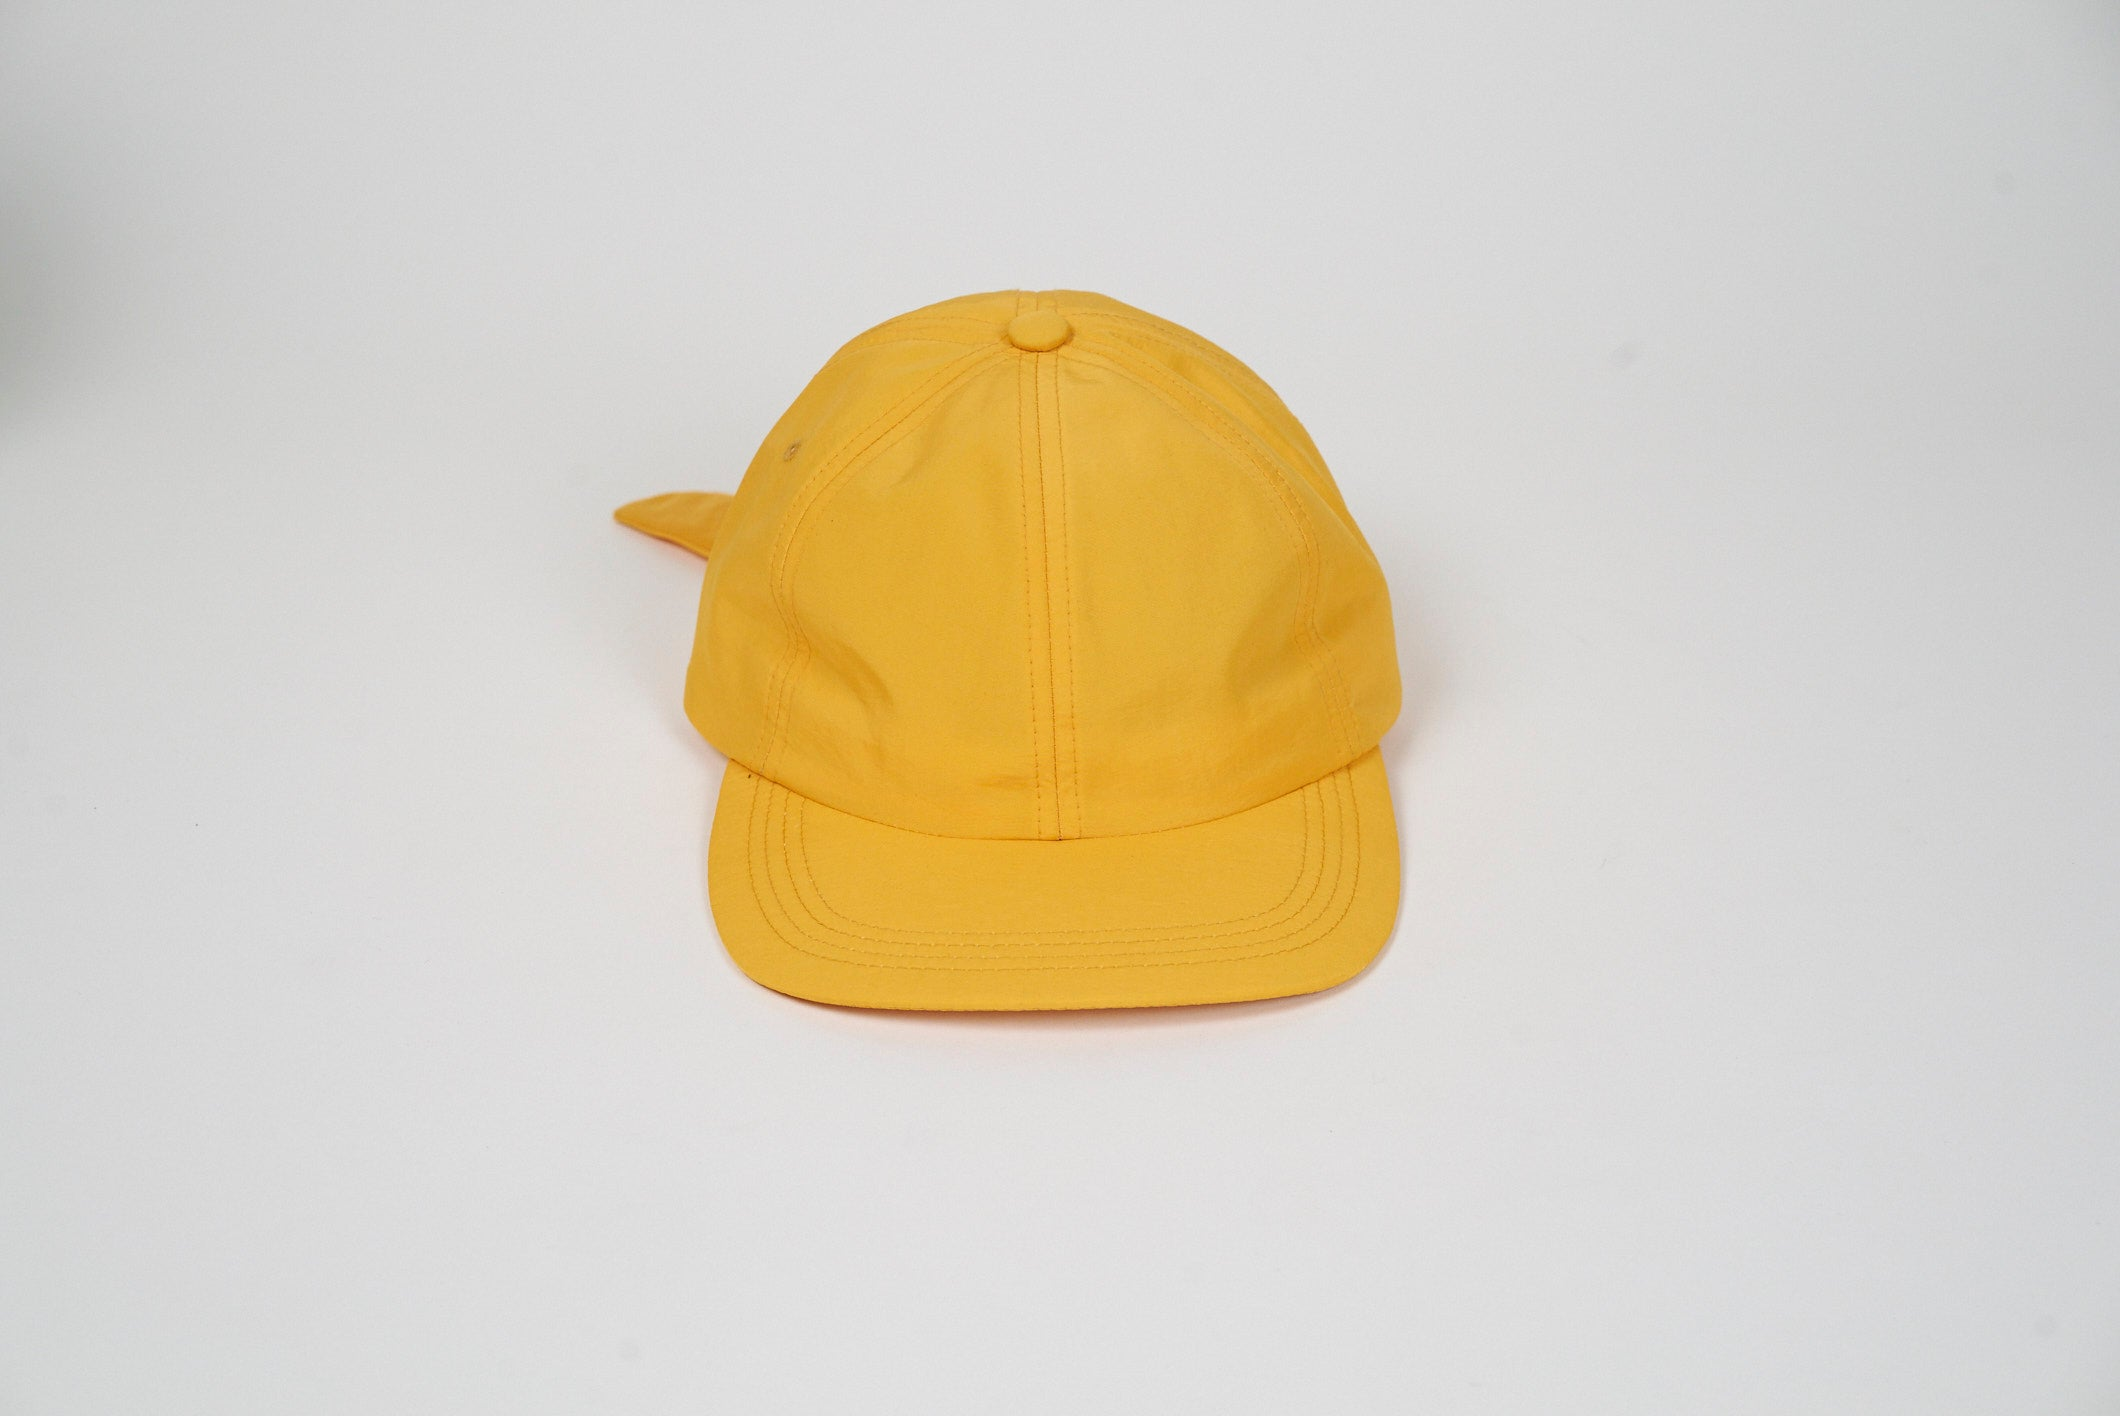 How to tie a cap with an elastic band